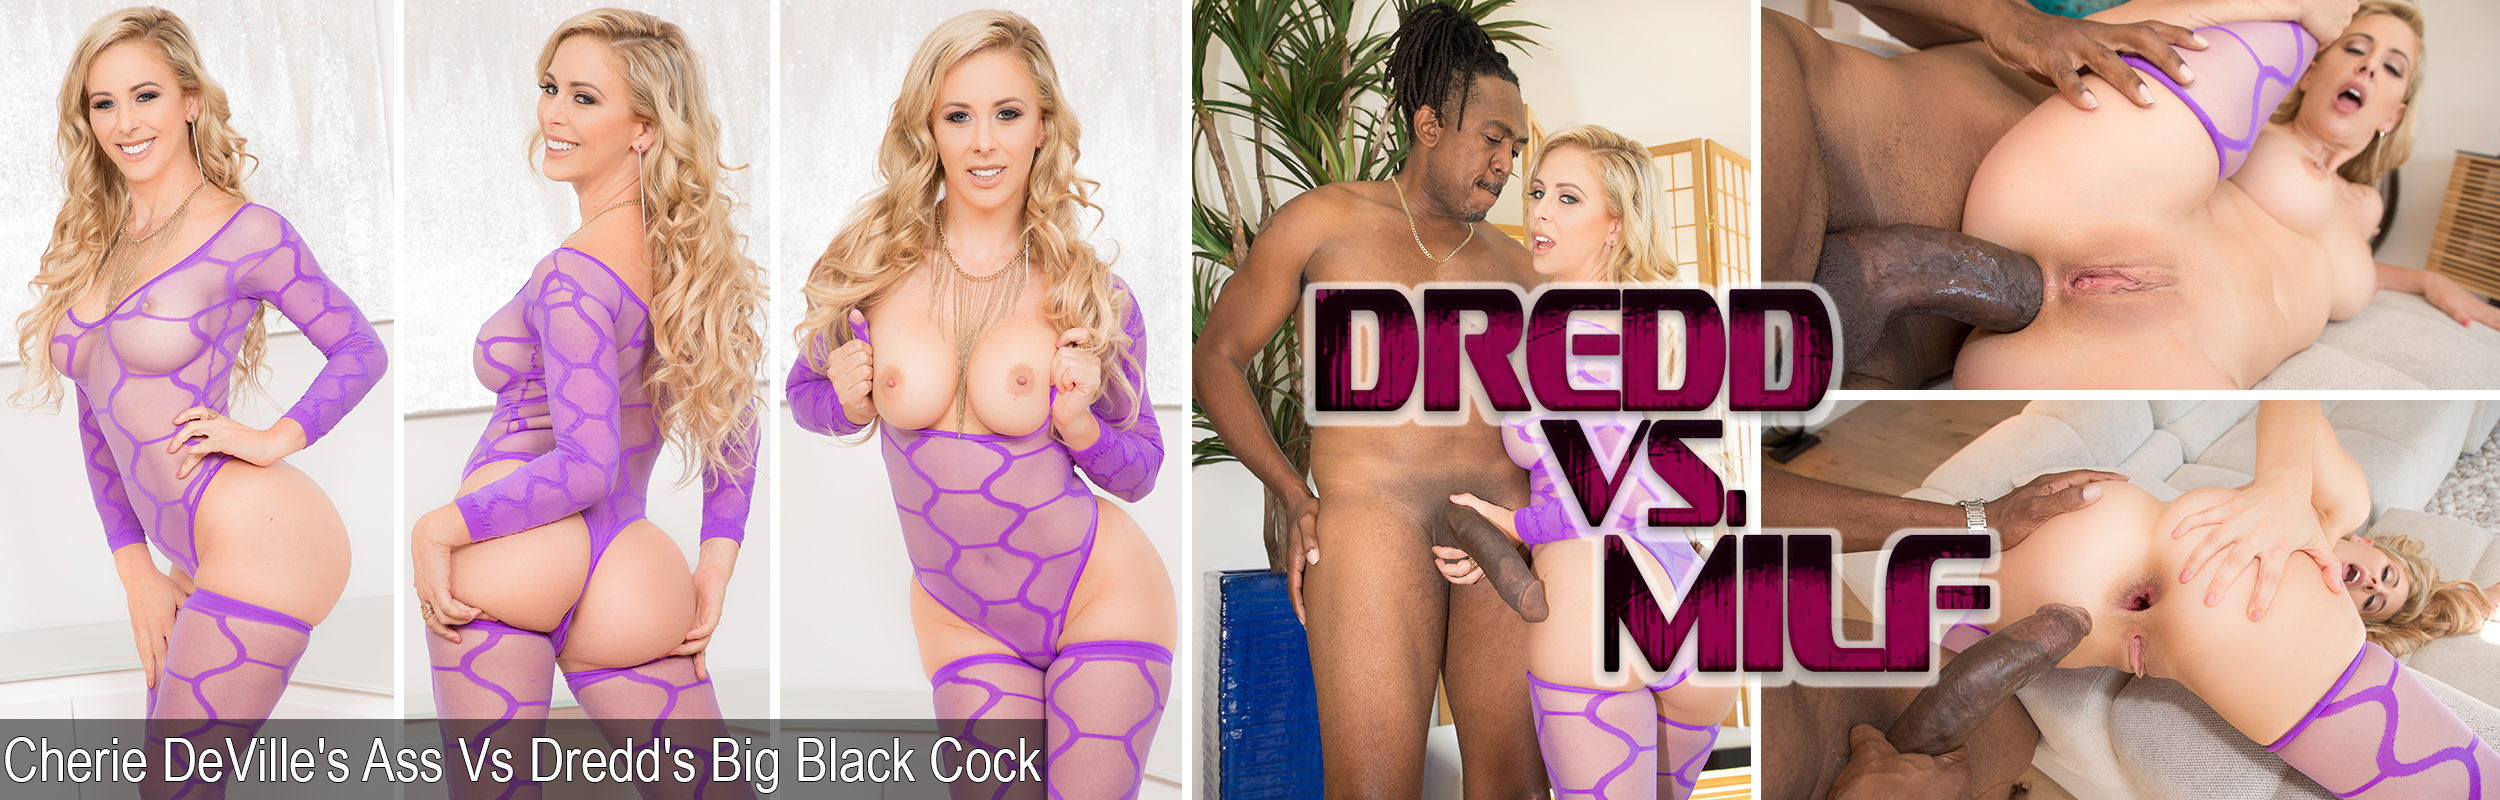 Cherie DeVille's Ass Vs Dredd's Big Black Cock